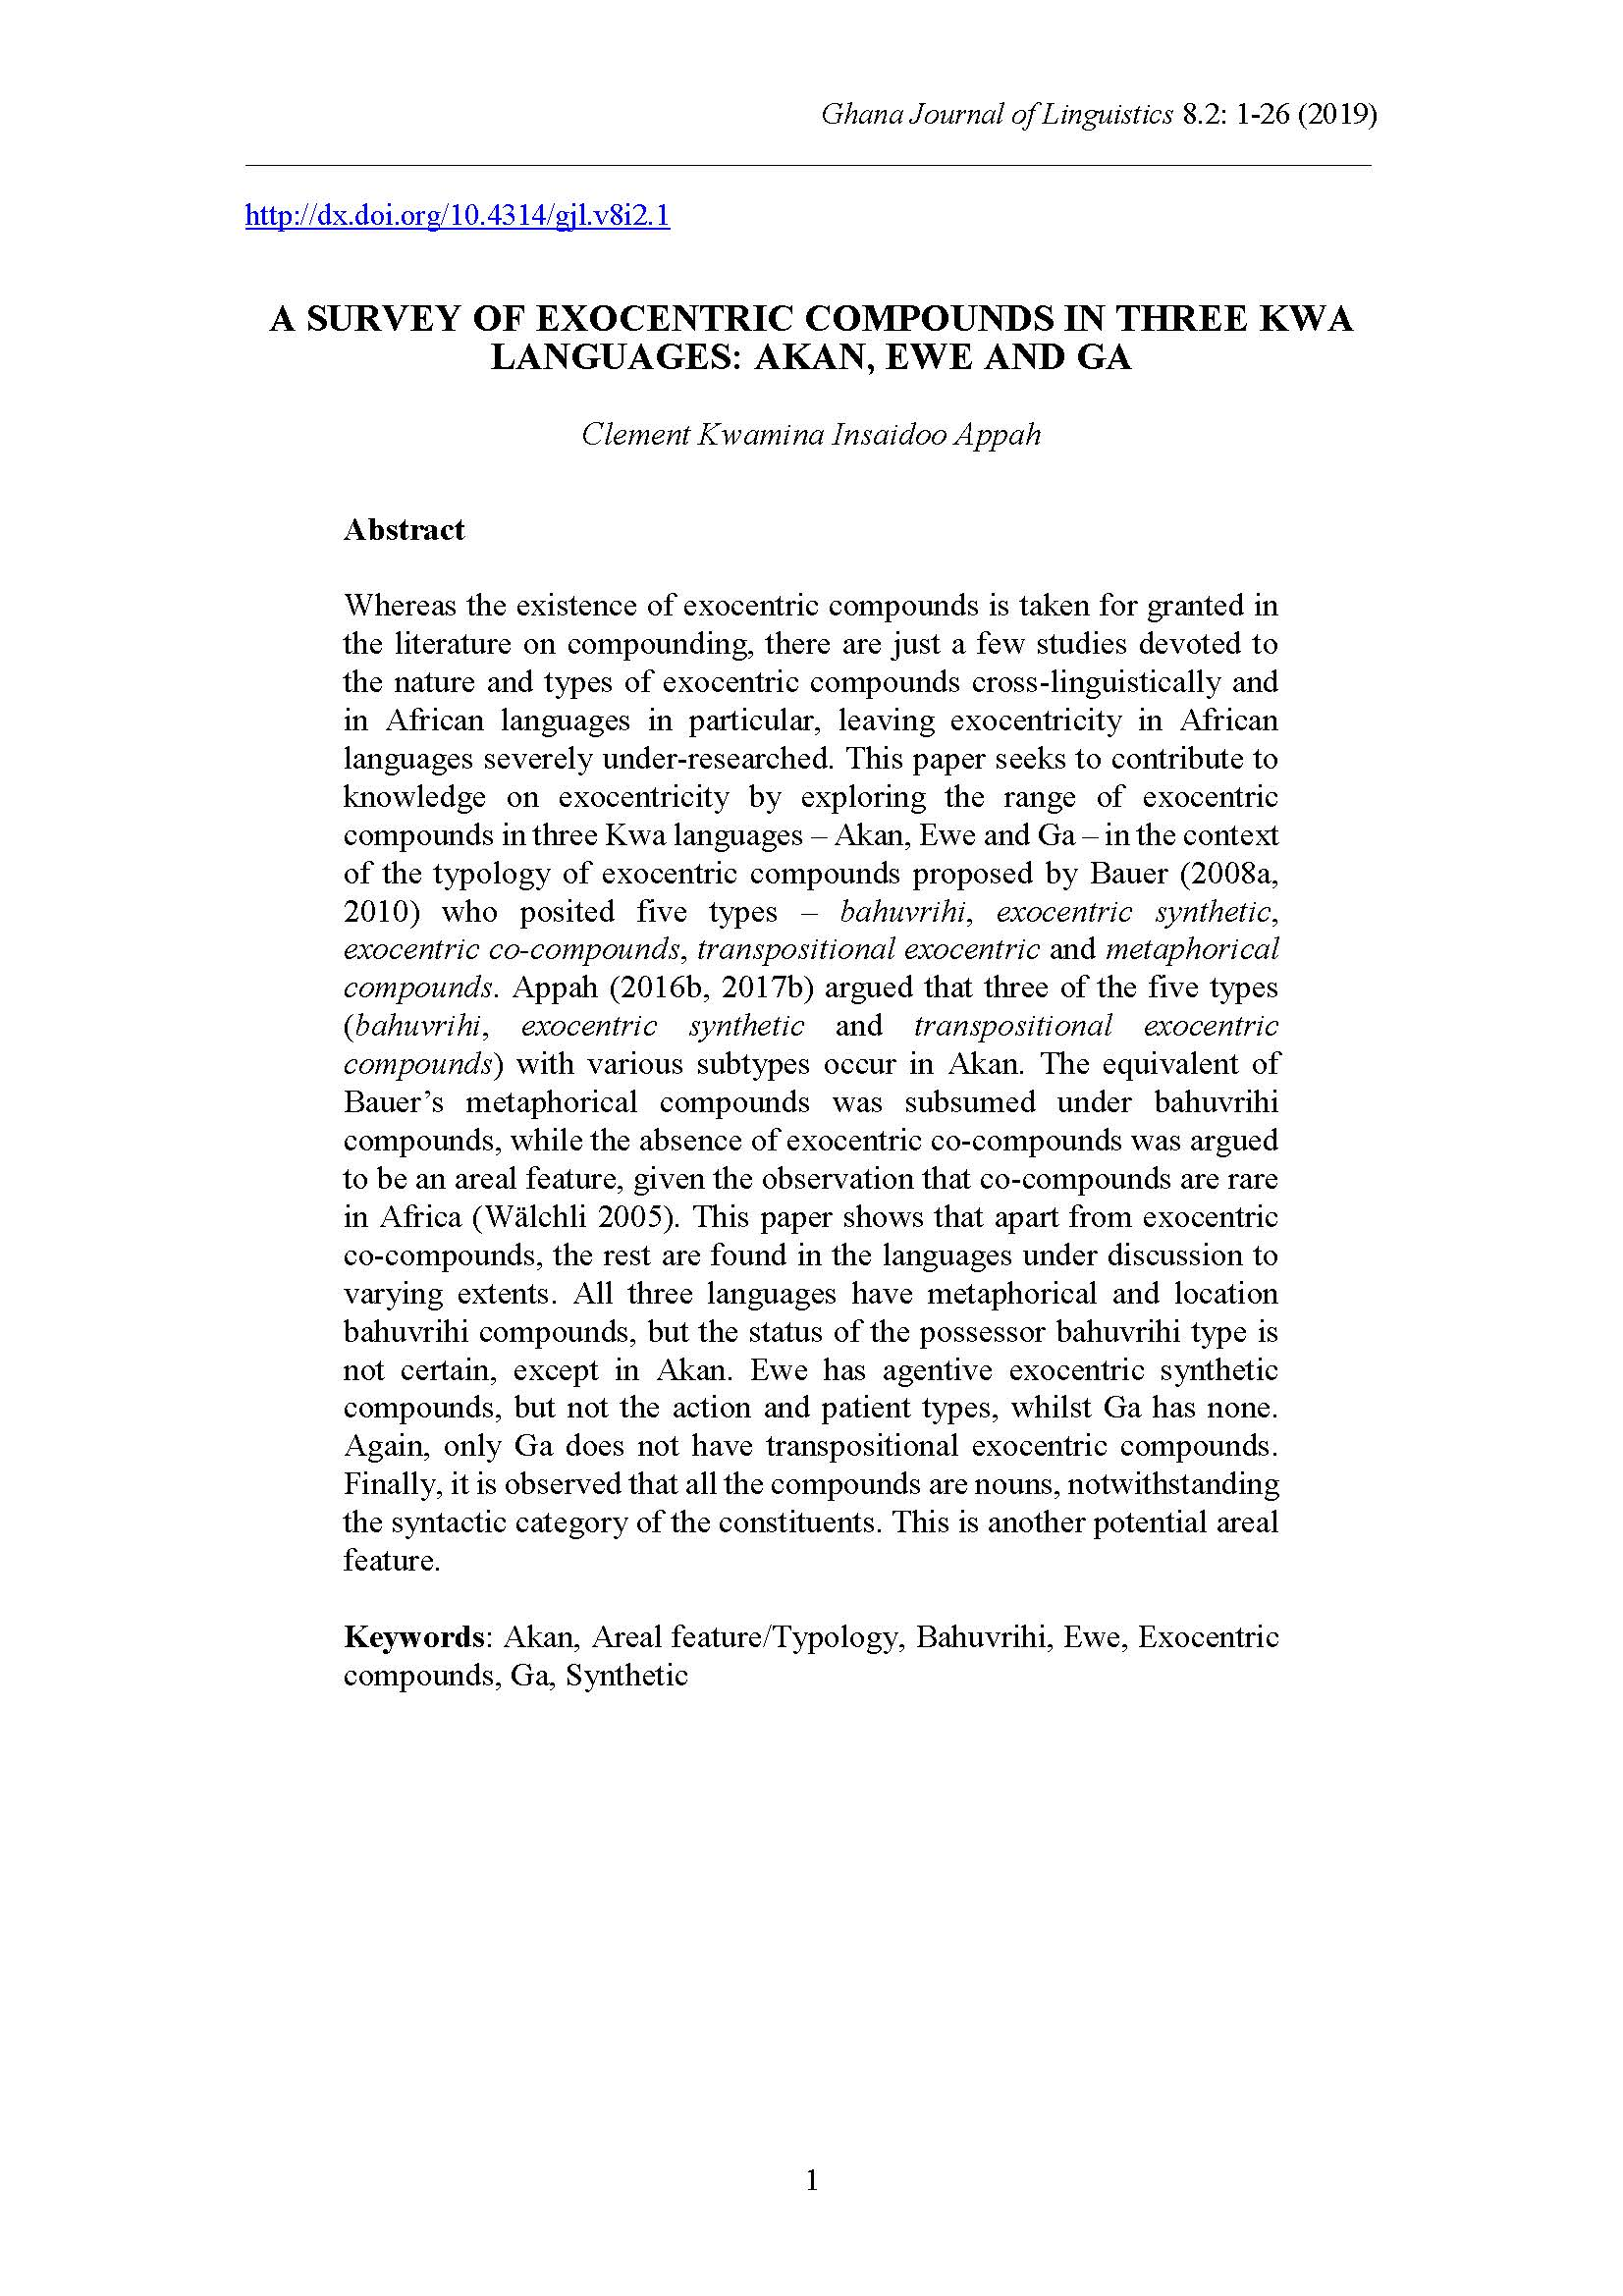 a survey of exocentric compounds in three kwa languages: akan, ewe, and ga